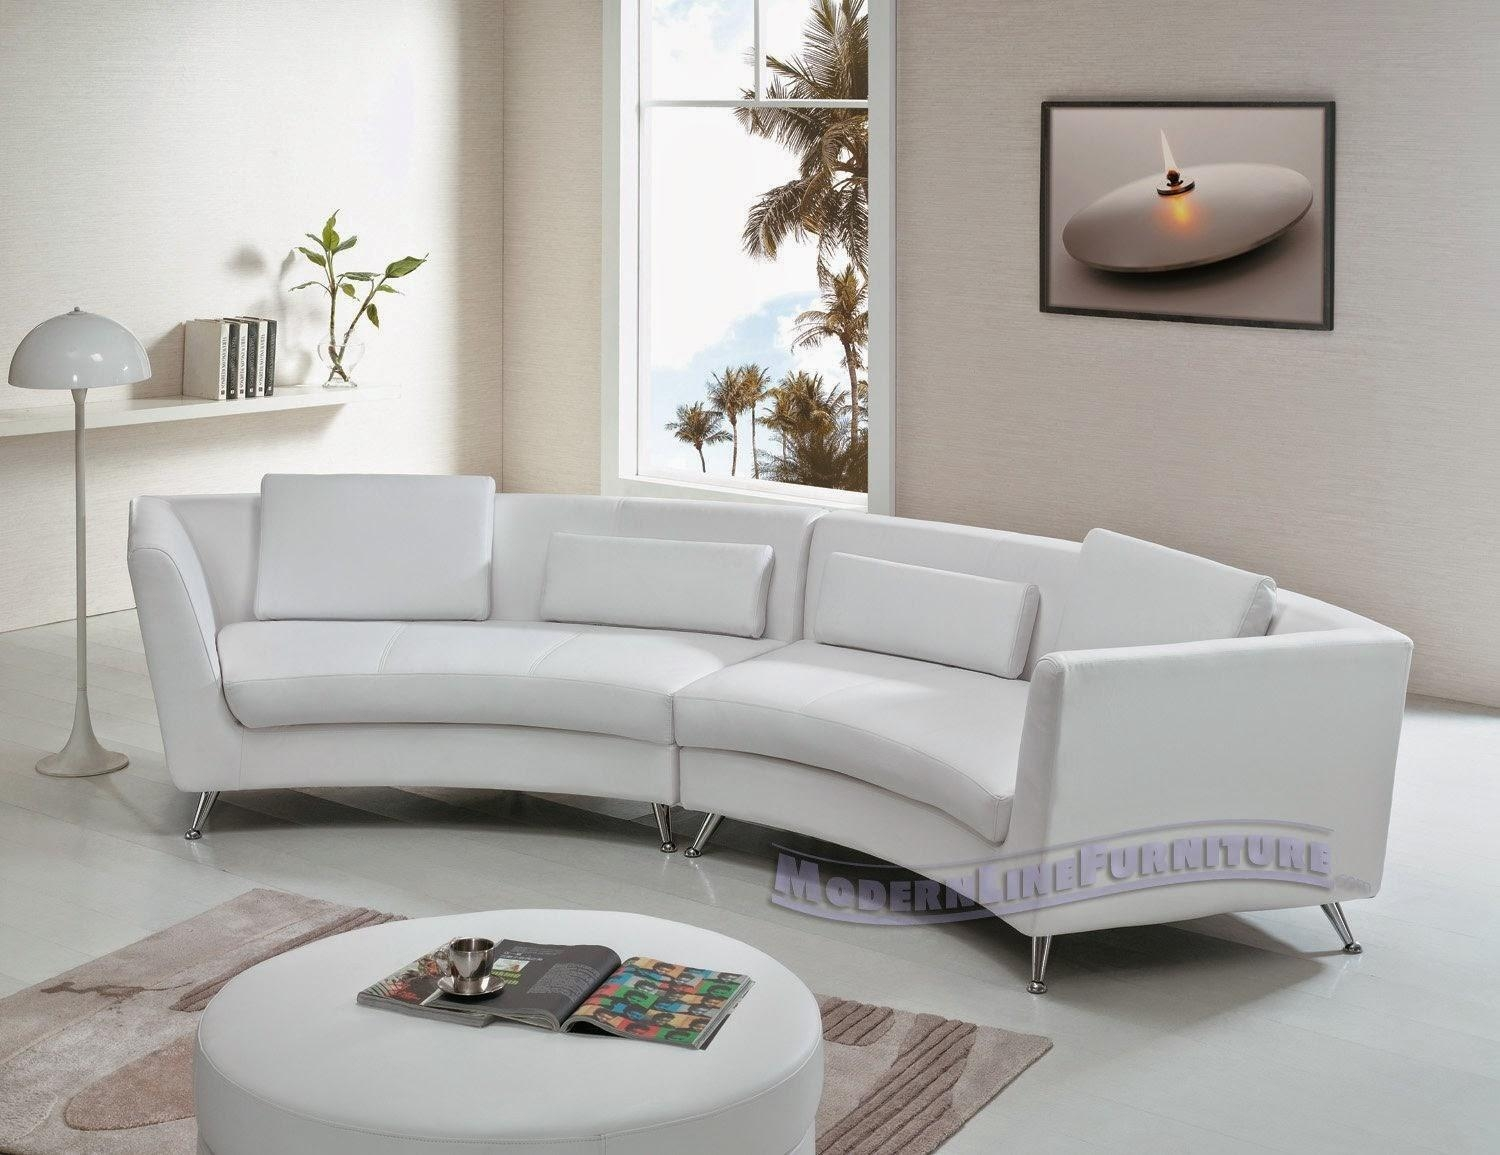 Sofa Curved: Curved Sofa For Bay Window With Sofas For Bay Window (Image 13 of 20)